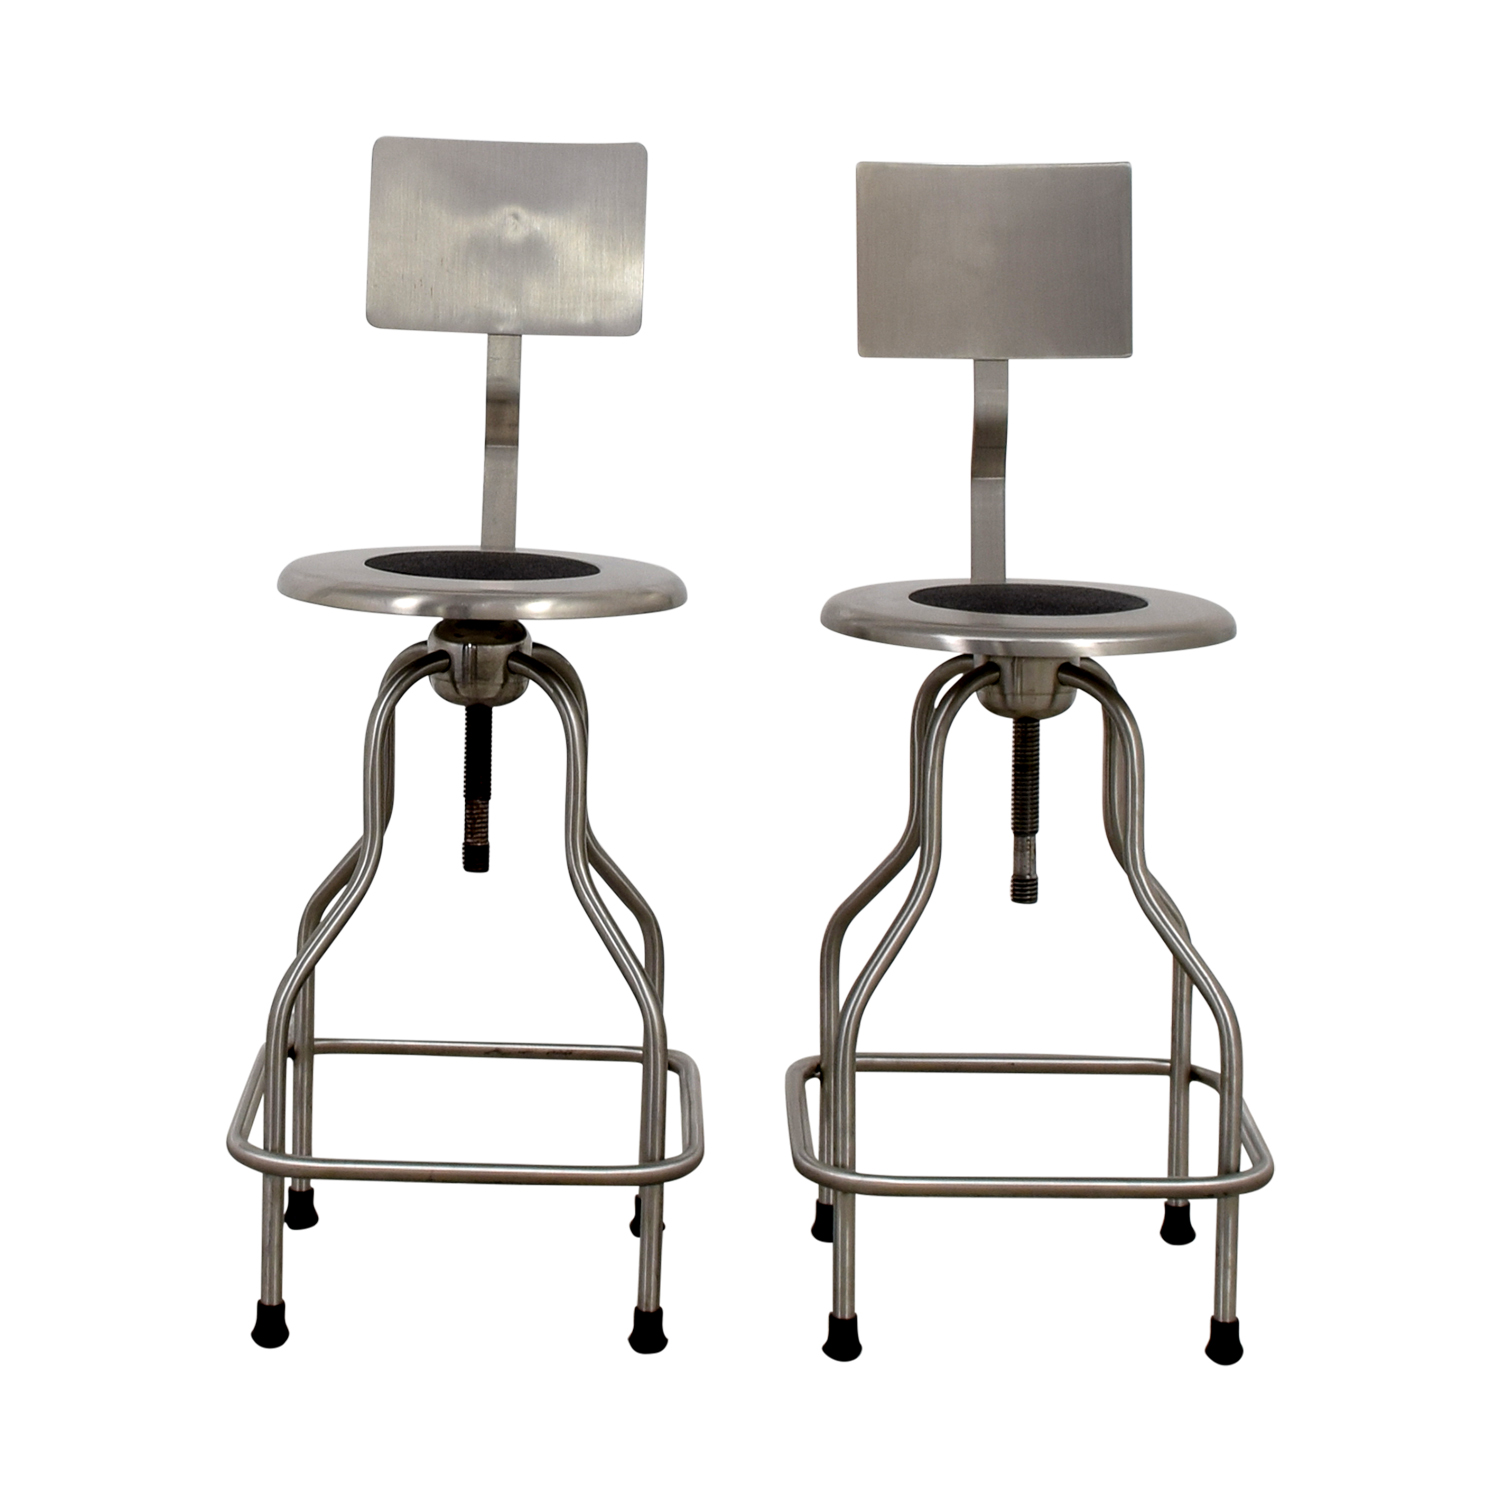 shop Design Within Reach Steel Precision Stools with Back Rest Design Within Reach